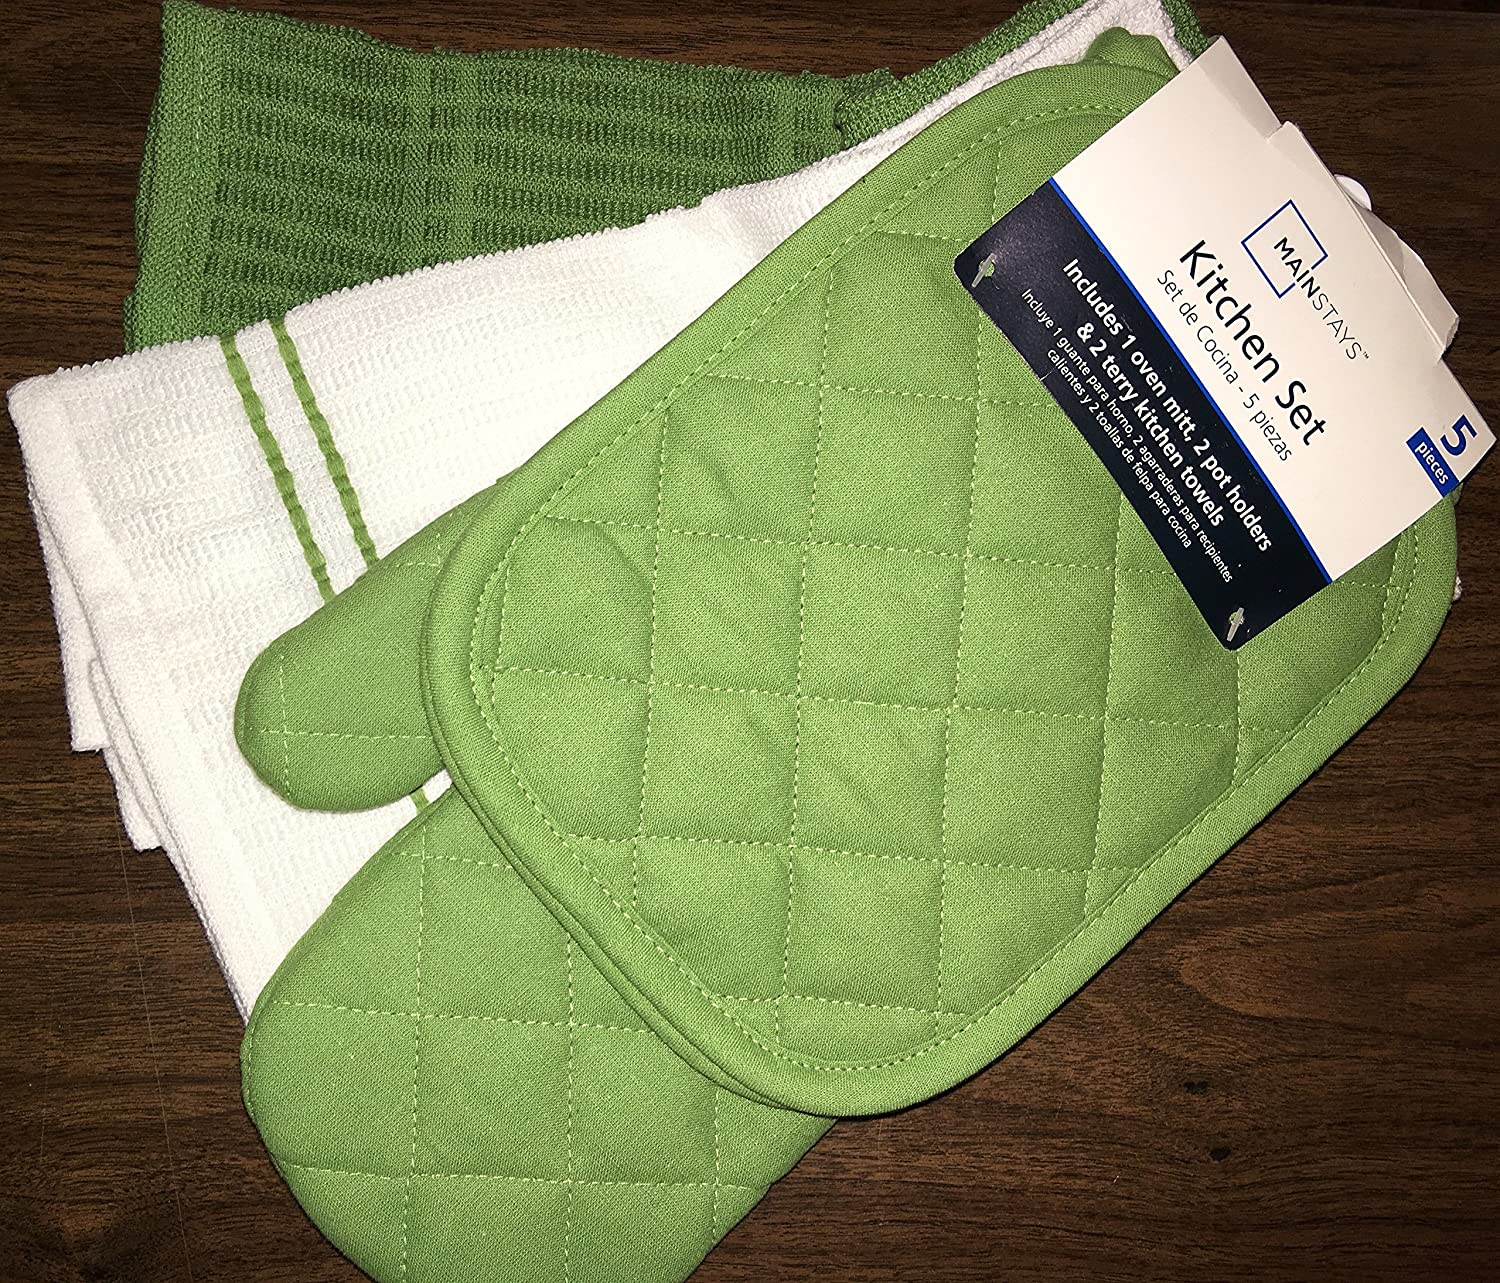 Amazon.com: Green Stalk Kitchen Towel Set 5 Piece- Pot Holders, Oven Mitt, and Terry Kitchen Towels: Home & Kitchen